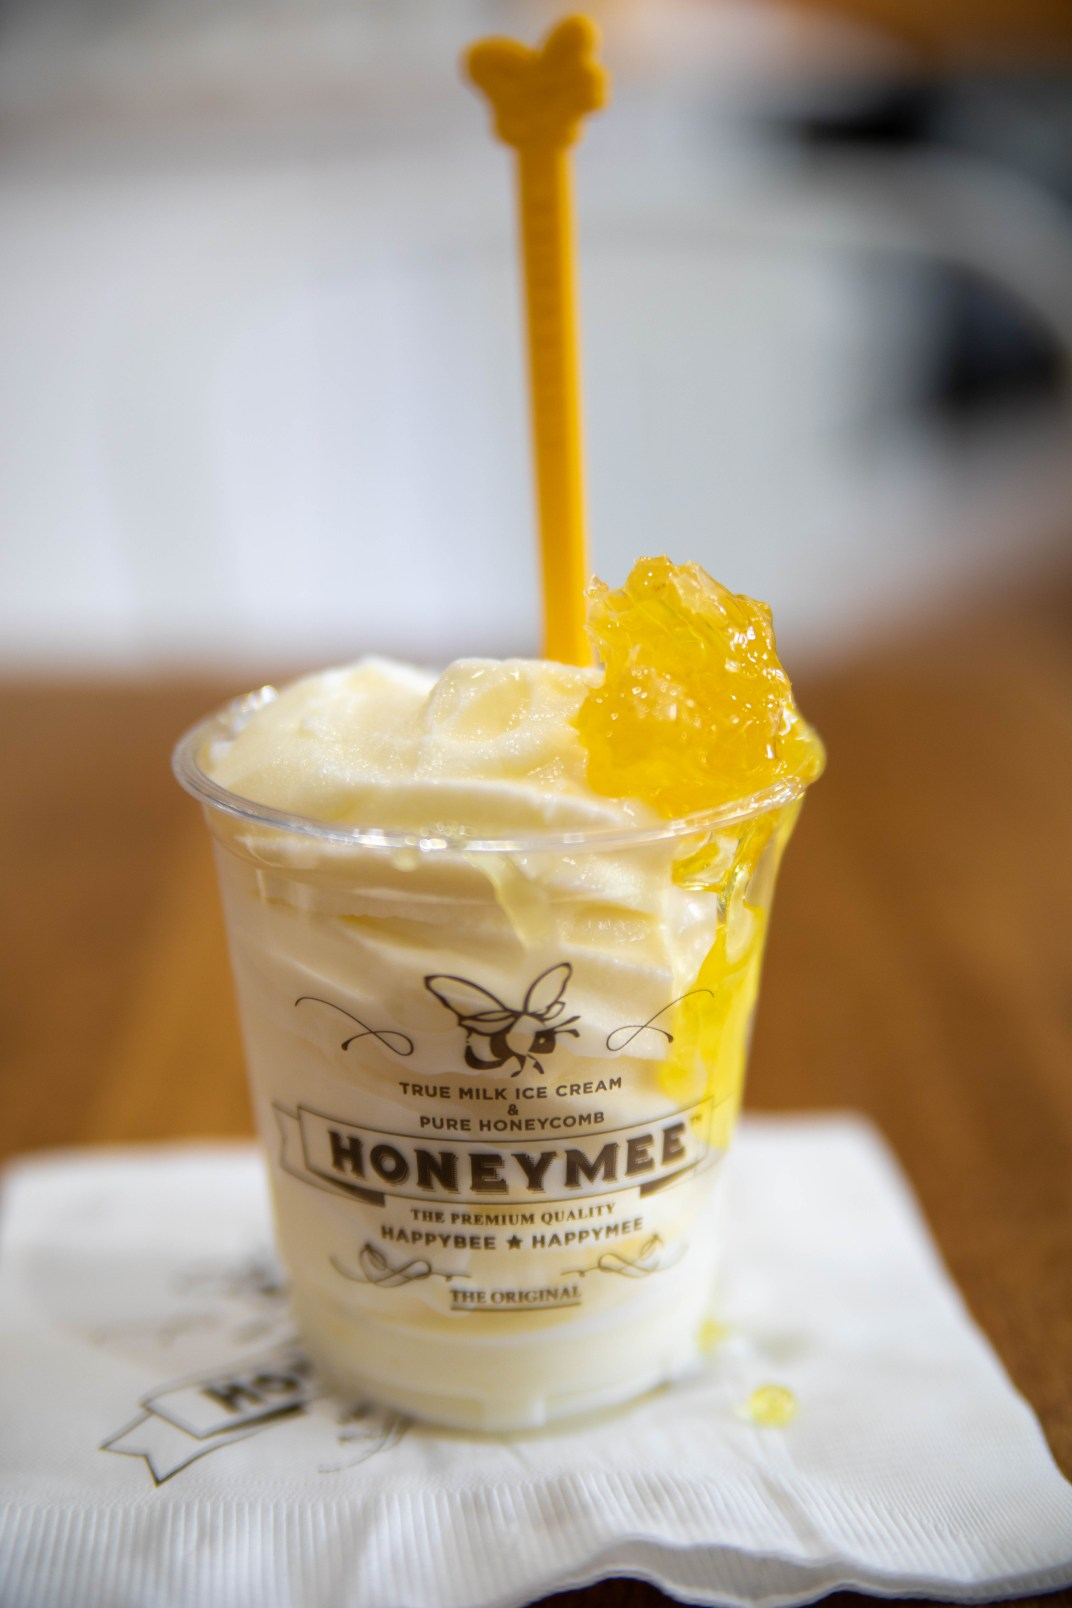 Honeymee Los Angeles Milk and Honeycomb Luxury Ice Cream